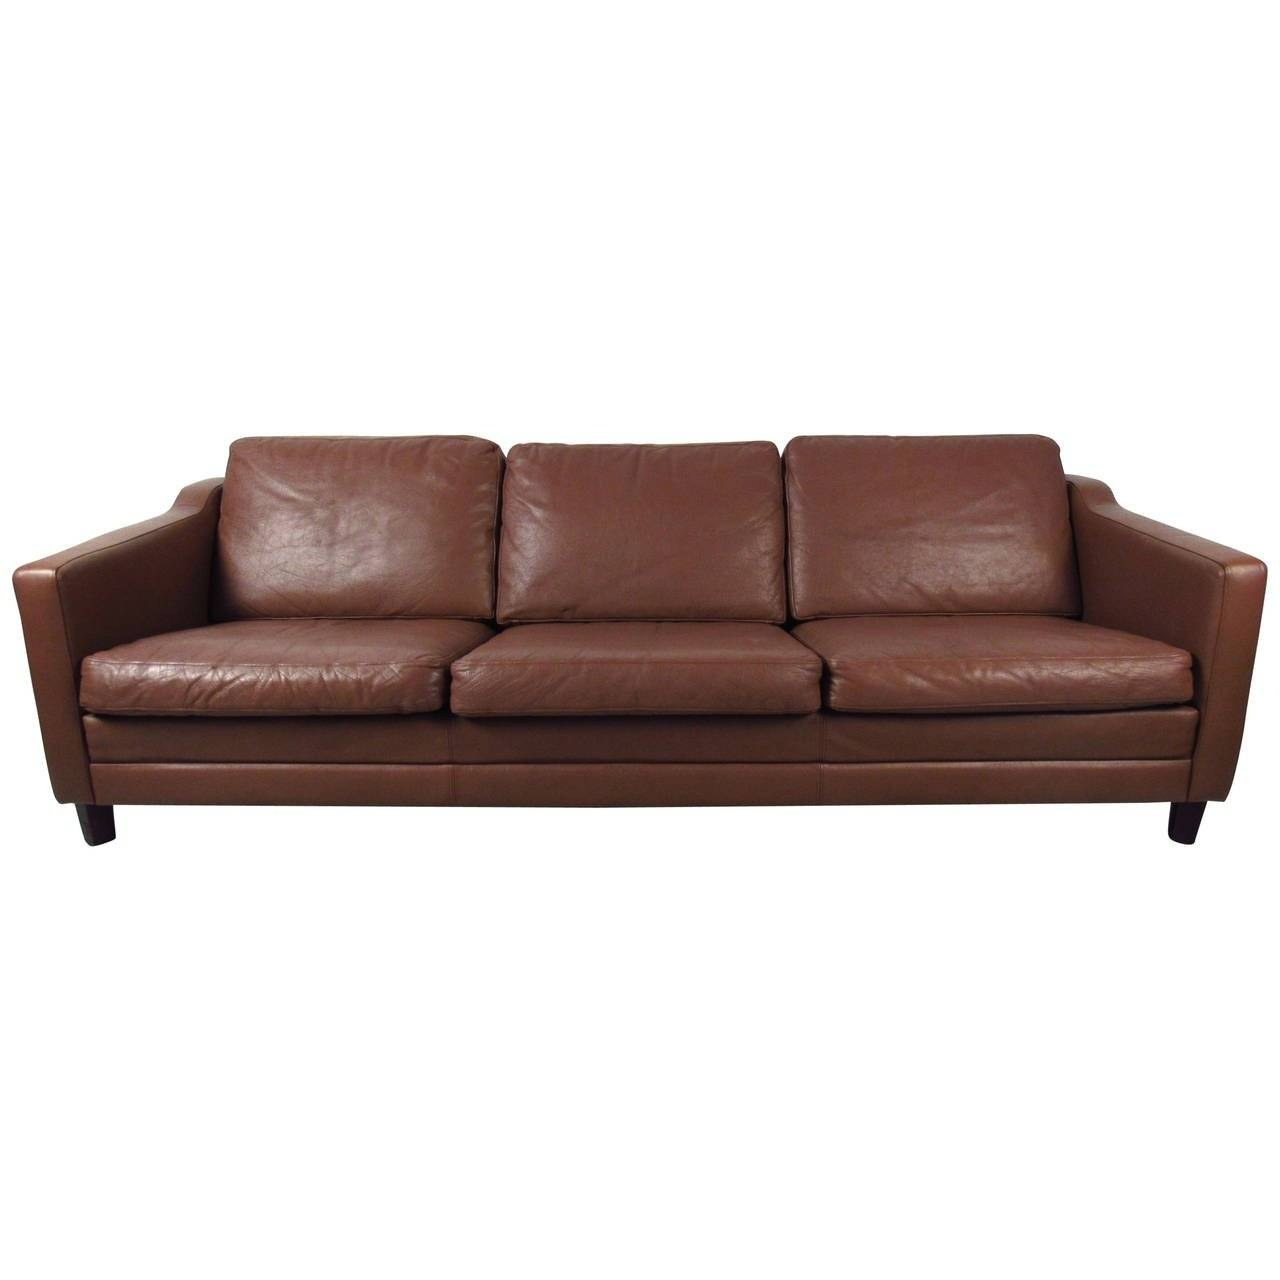 Mid-Century Modern Danish Leather Sofa In The Style Of Børge throughout Modern Danish Sofas (Image 8 of 15)